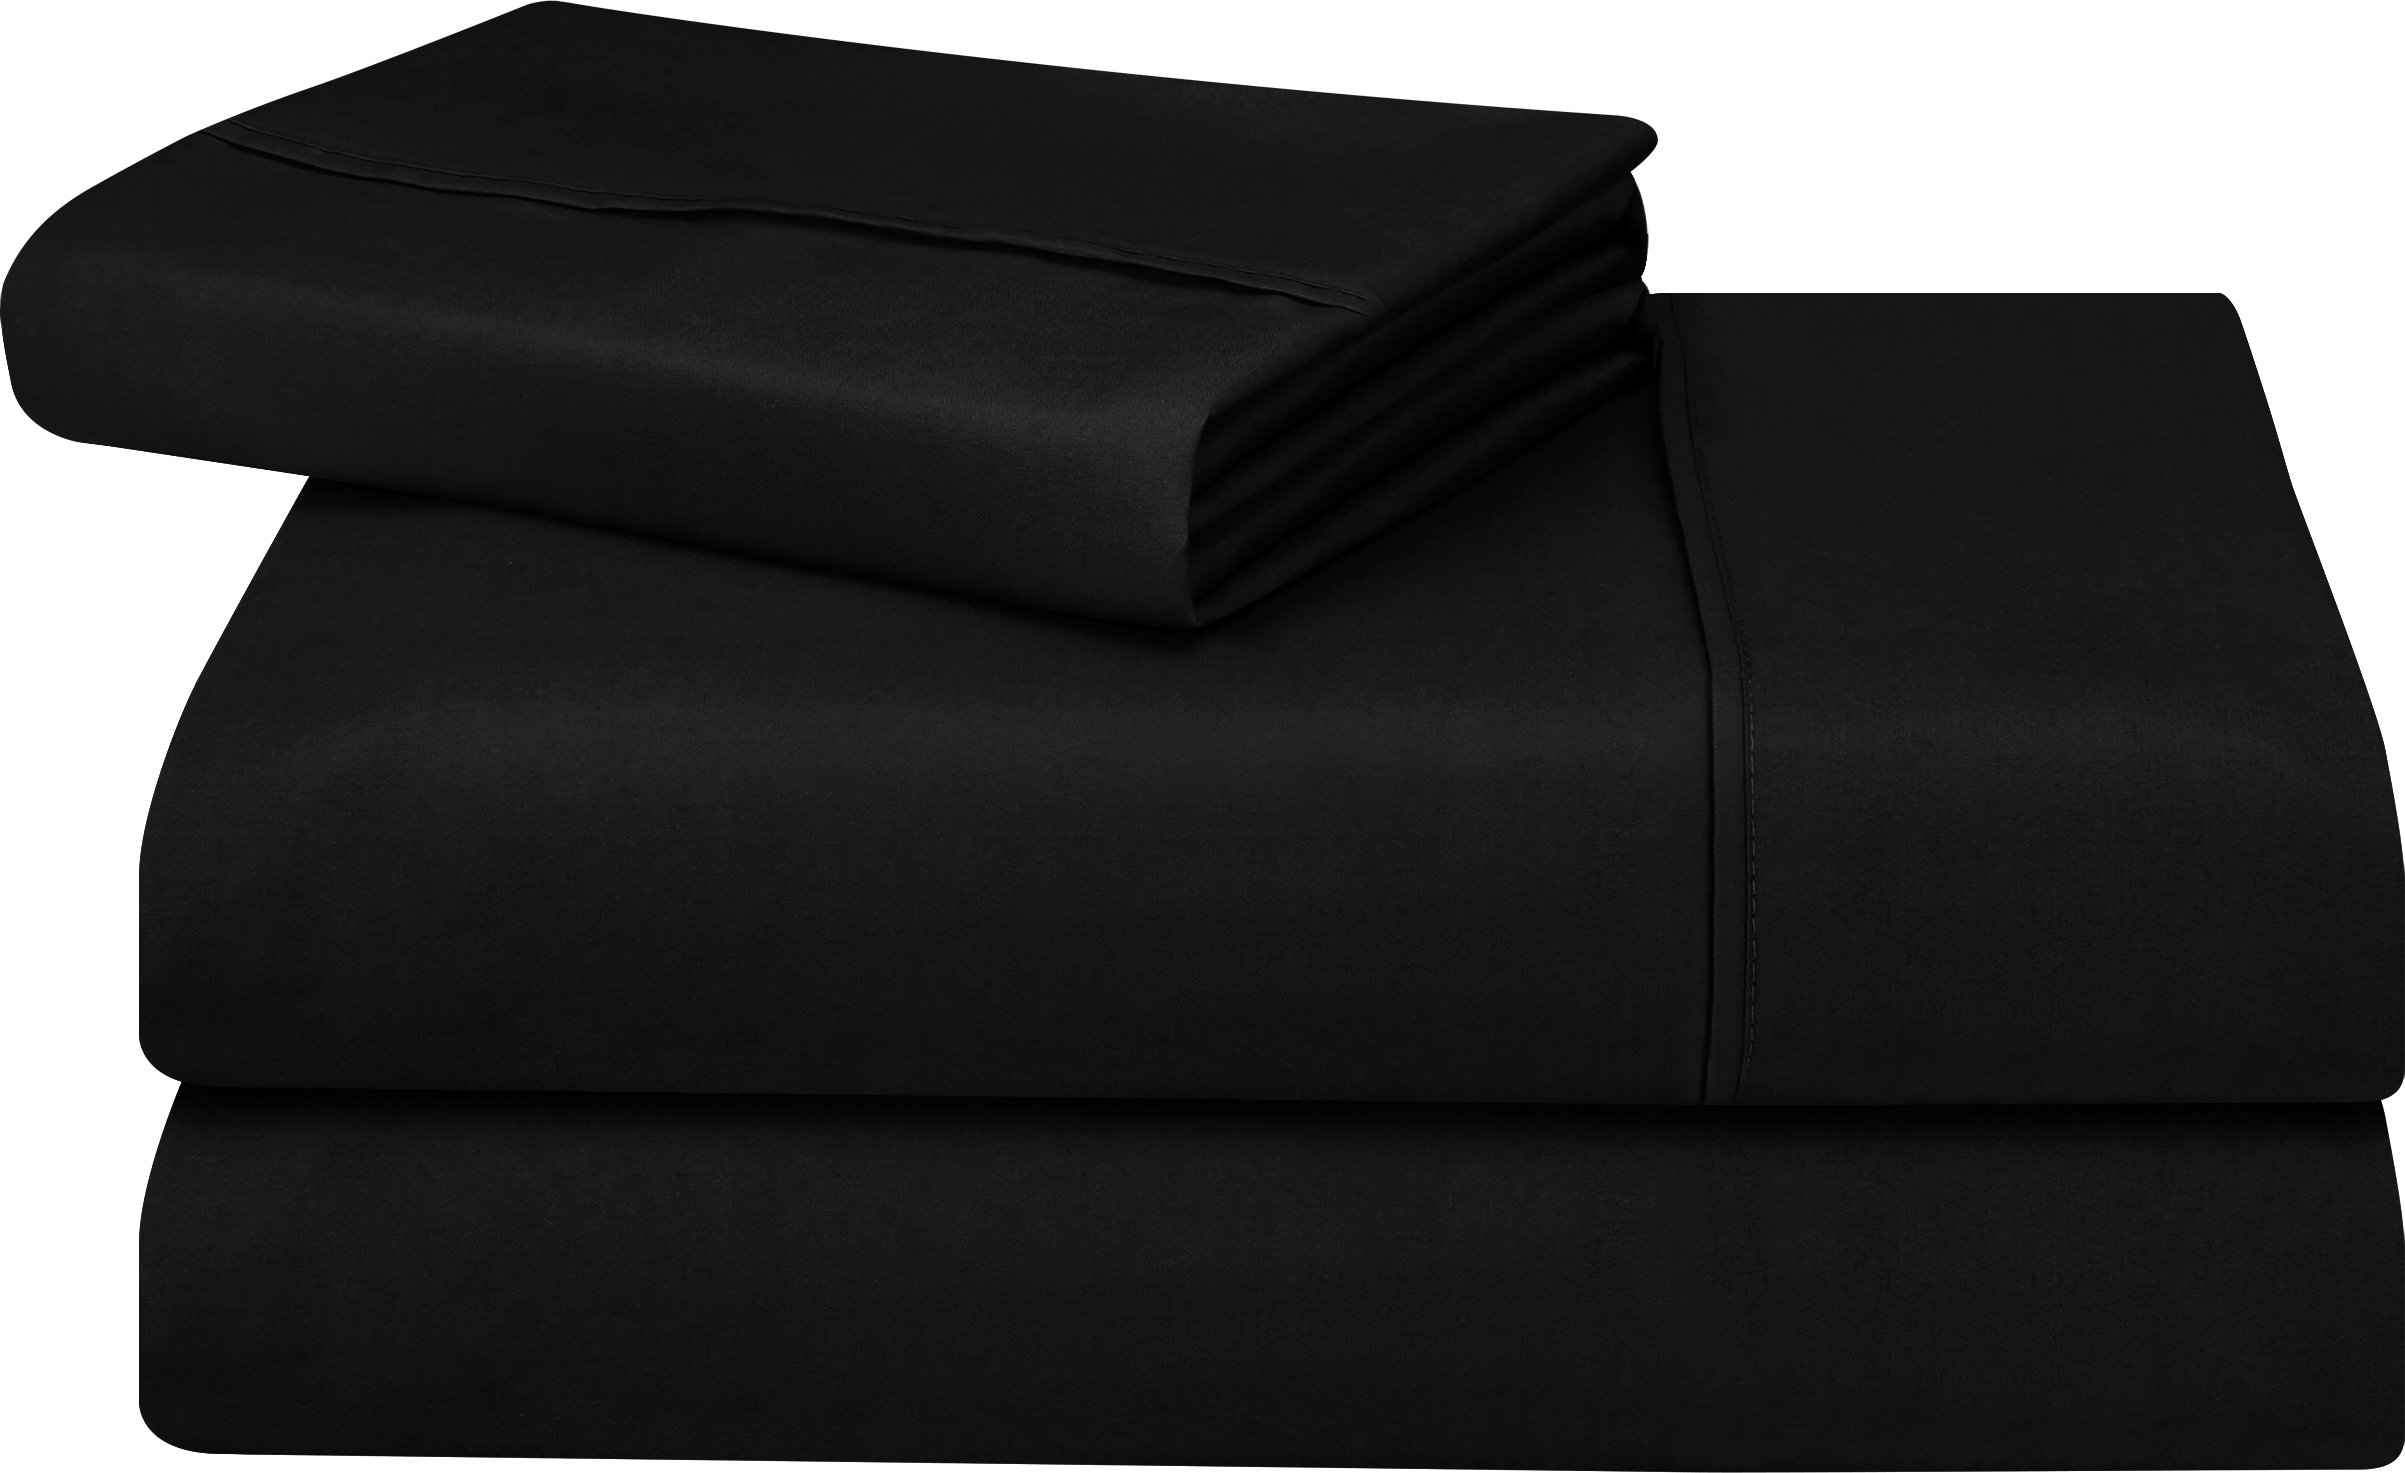 Utopia Bedding Soft Brushed Microfiber Wrinkle Fade and Stain Resistant 3-Piece Twin Bed Sheet Set - Black